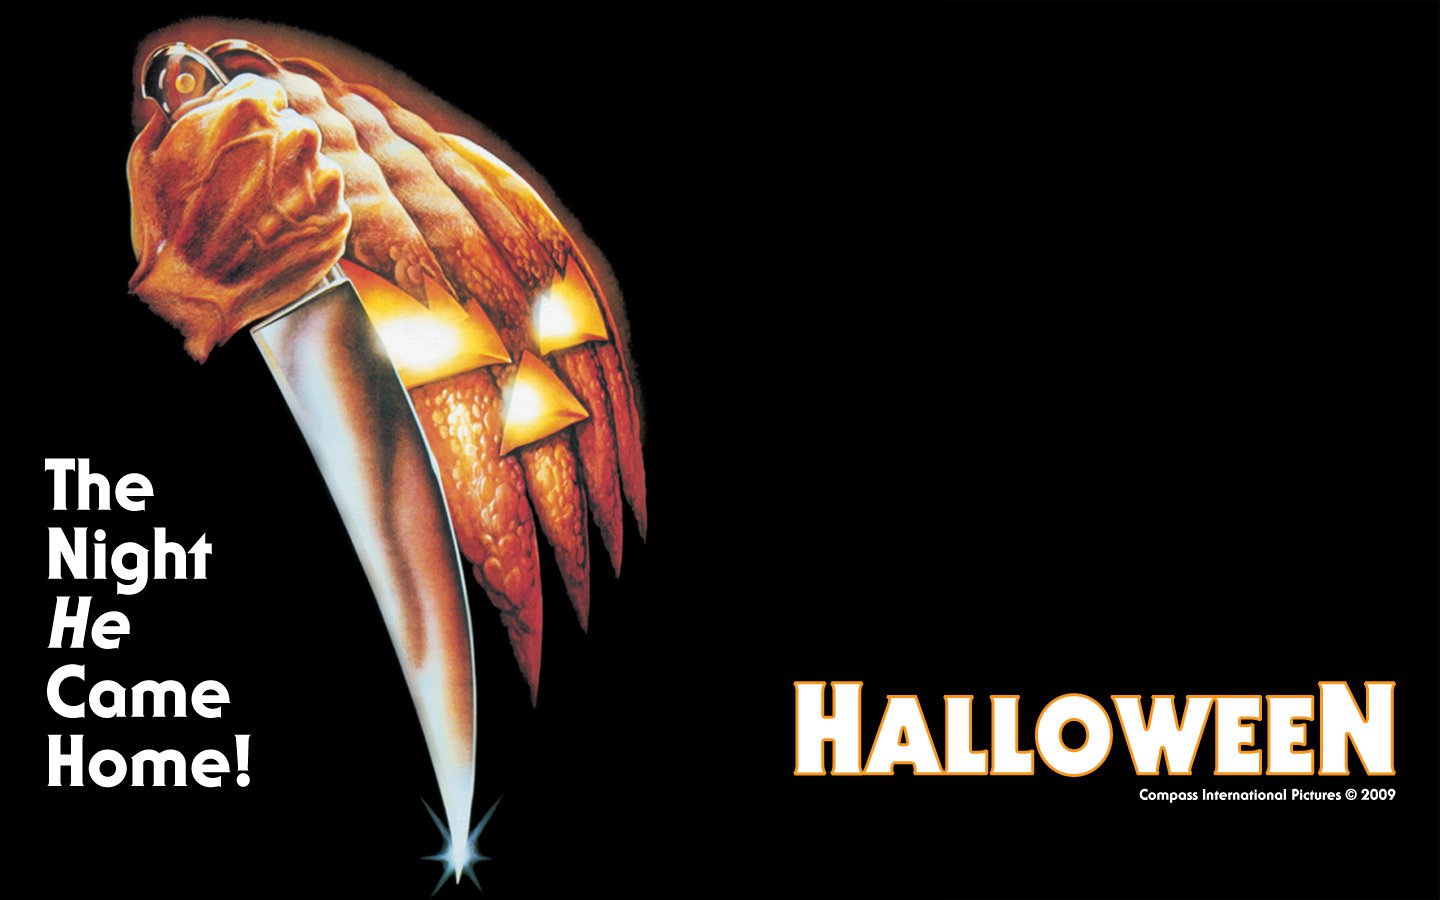 Download hd 1440x900 Halloween movie desktop background ID:210455 for free